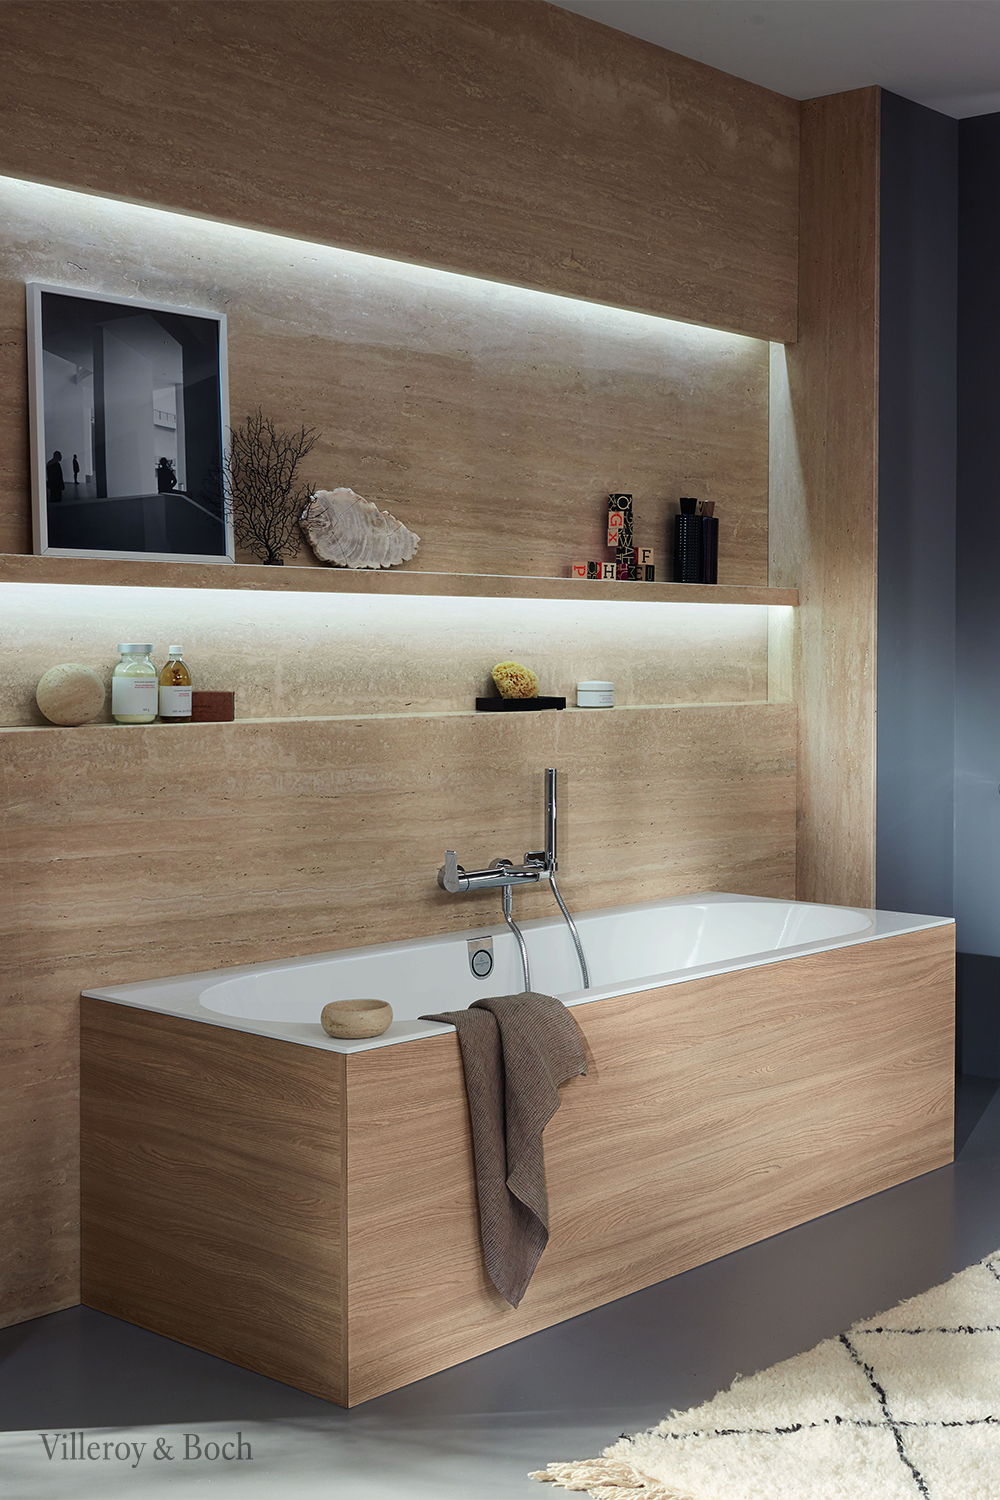 Today Natural Materials And Patterns Are More Popular Than Ever Before When It Comes To Interior Designs How About Badezimmer Holz Badezimmer Design Badewanne